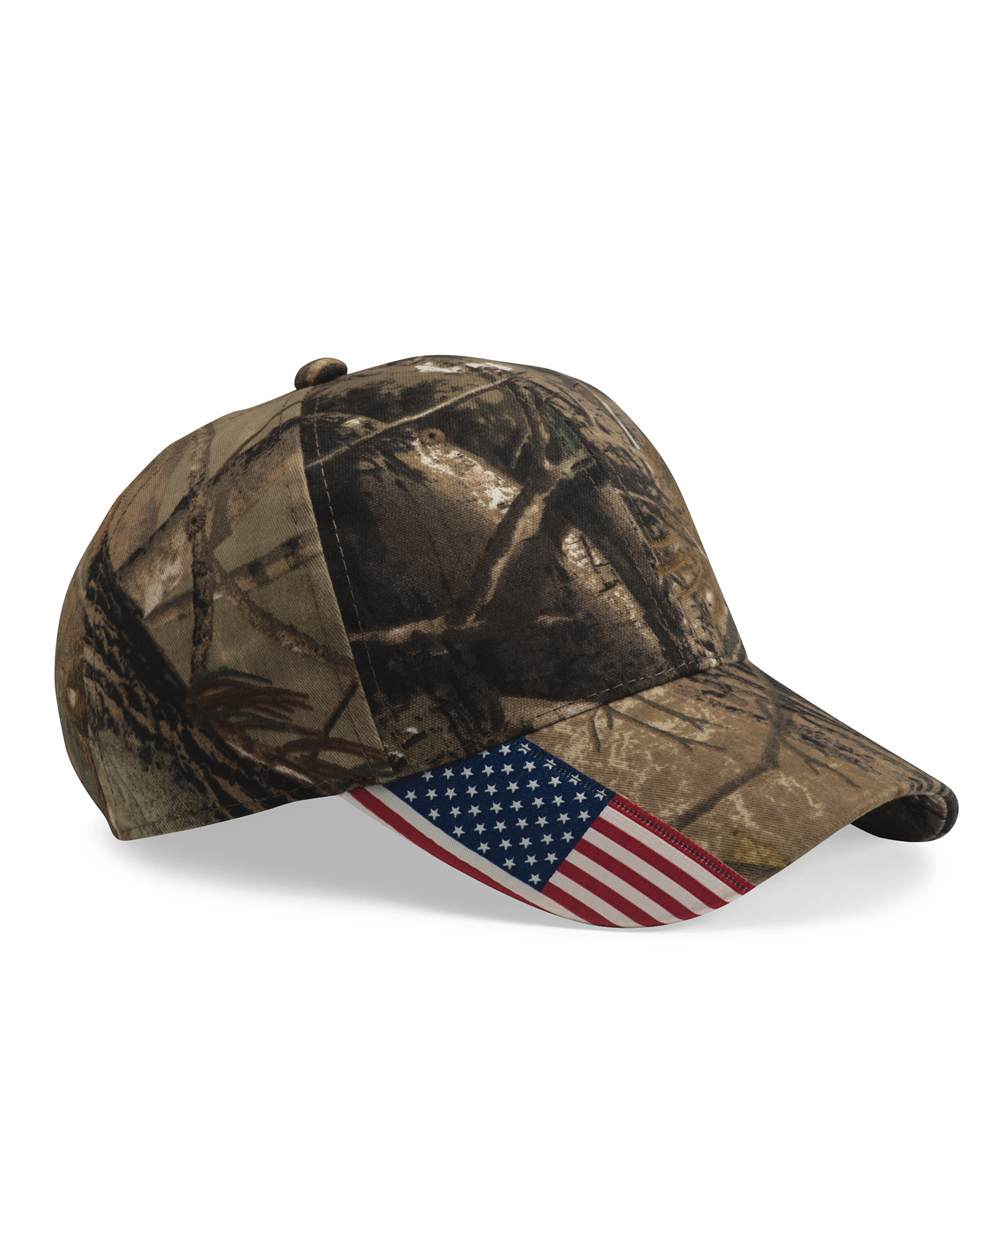 Outdoor Cap CWF305 Cap with Flag